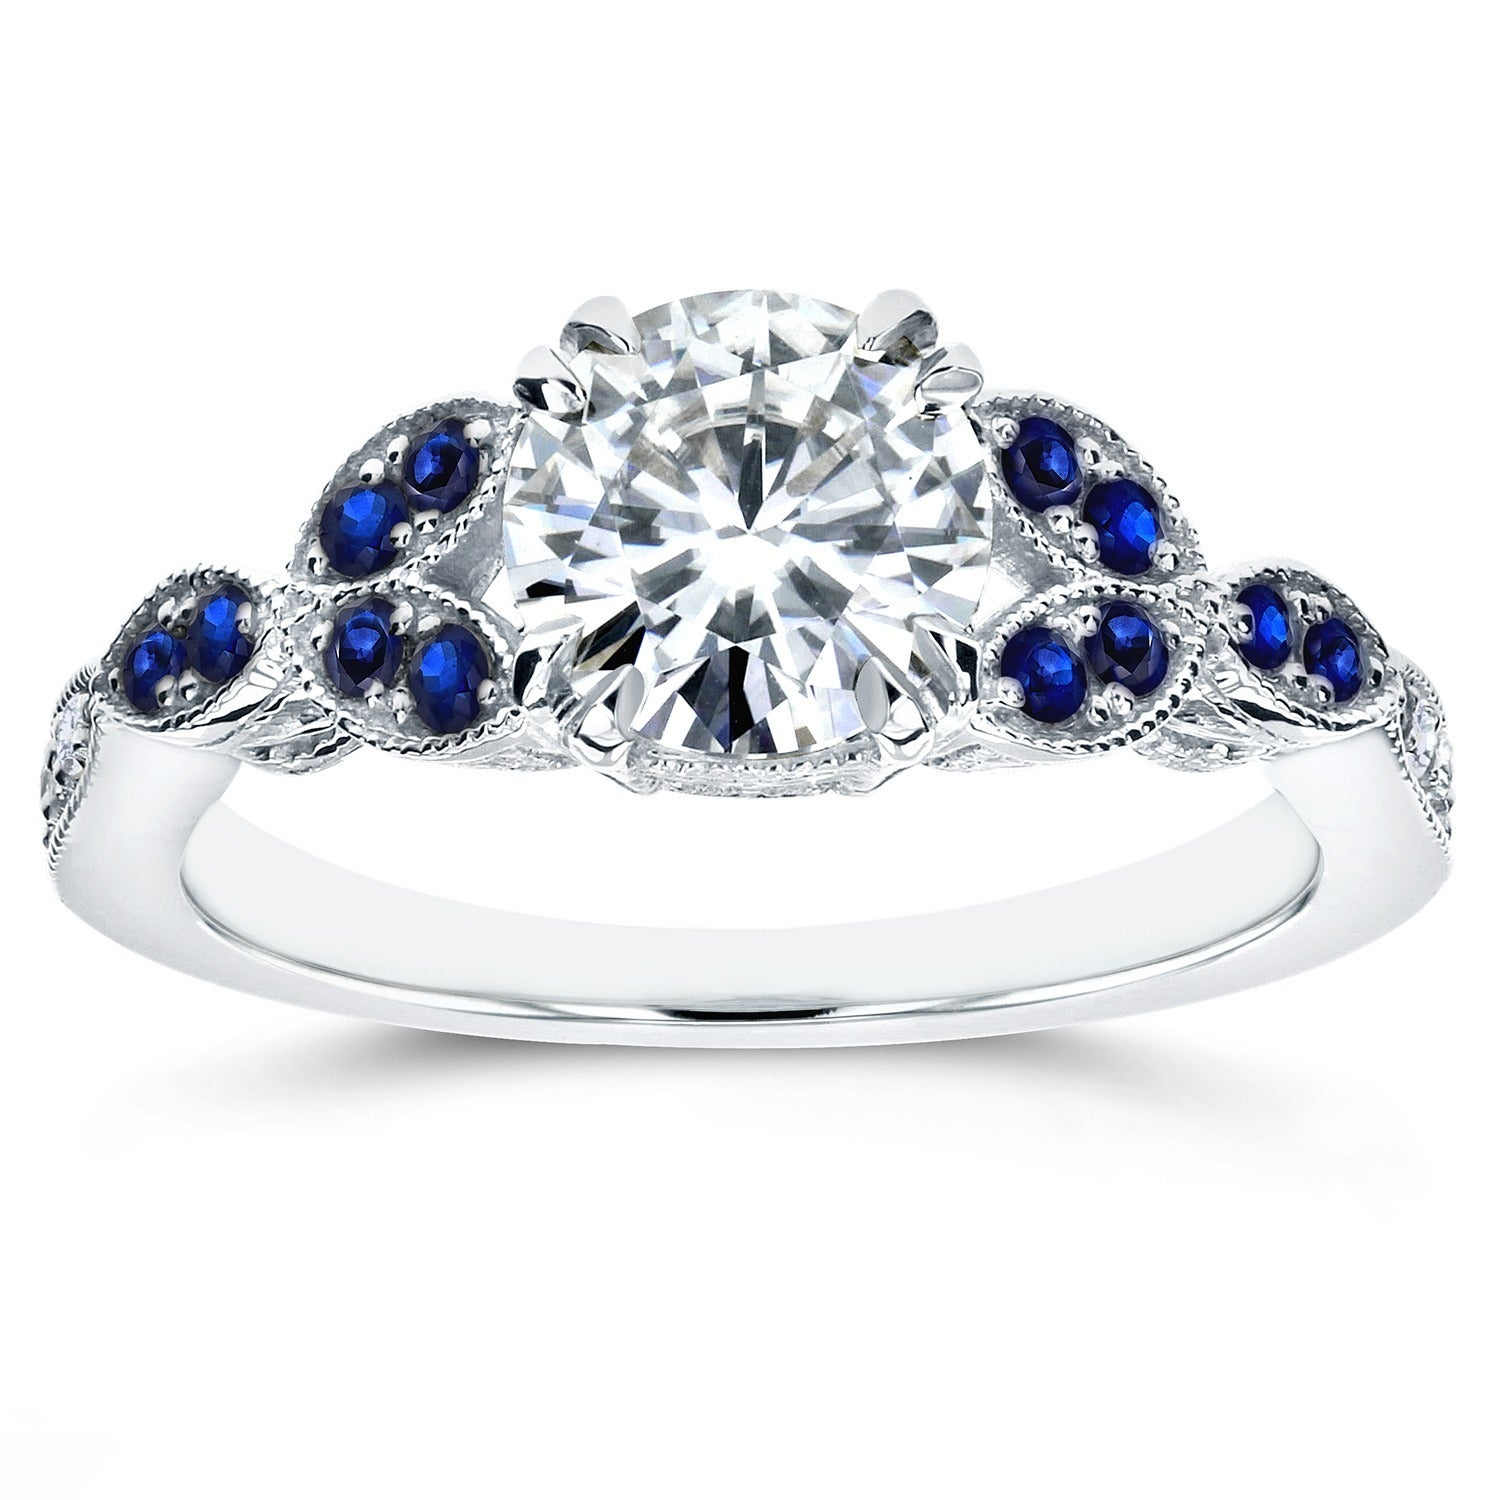 ring white engagement ebs kobelli diamonds accents unique sapphires ctw a gold diamond and moissanite with sapphire